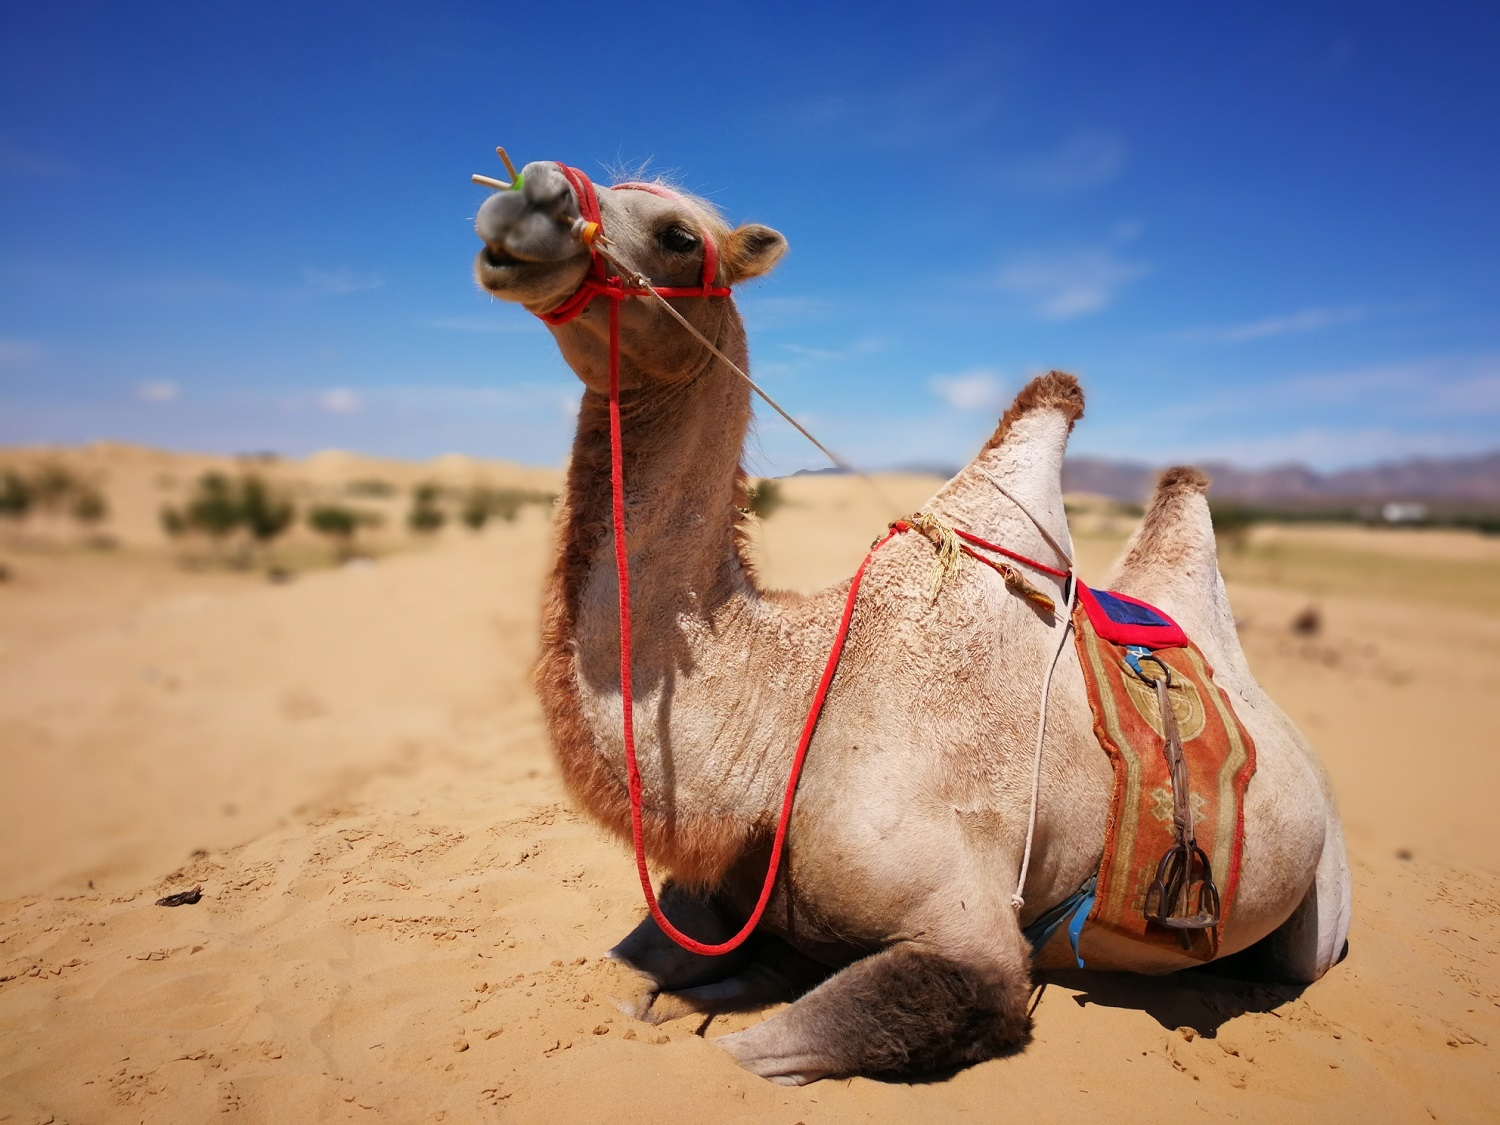 Camel in the sands